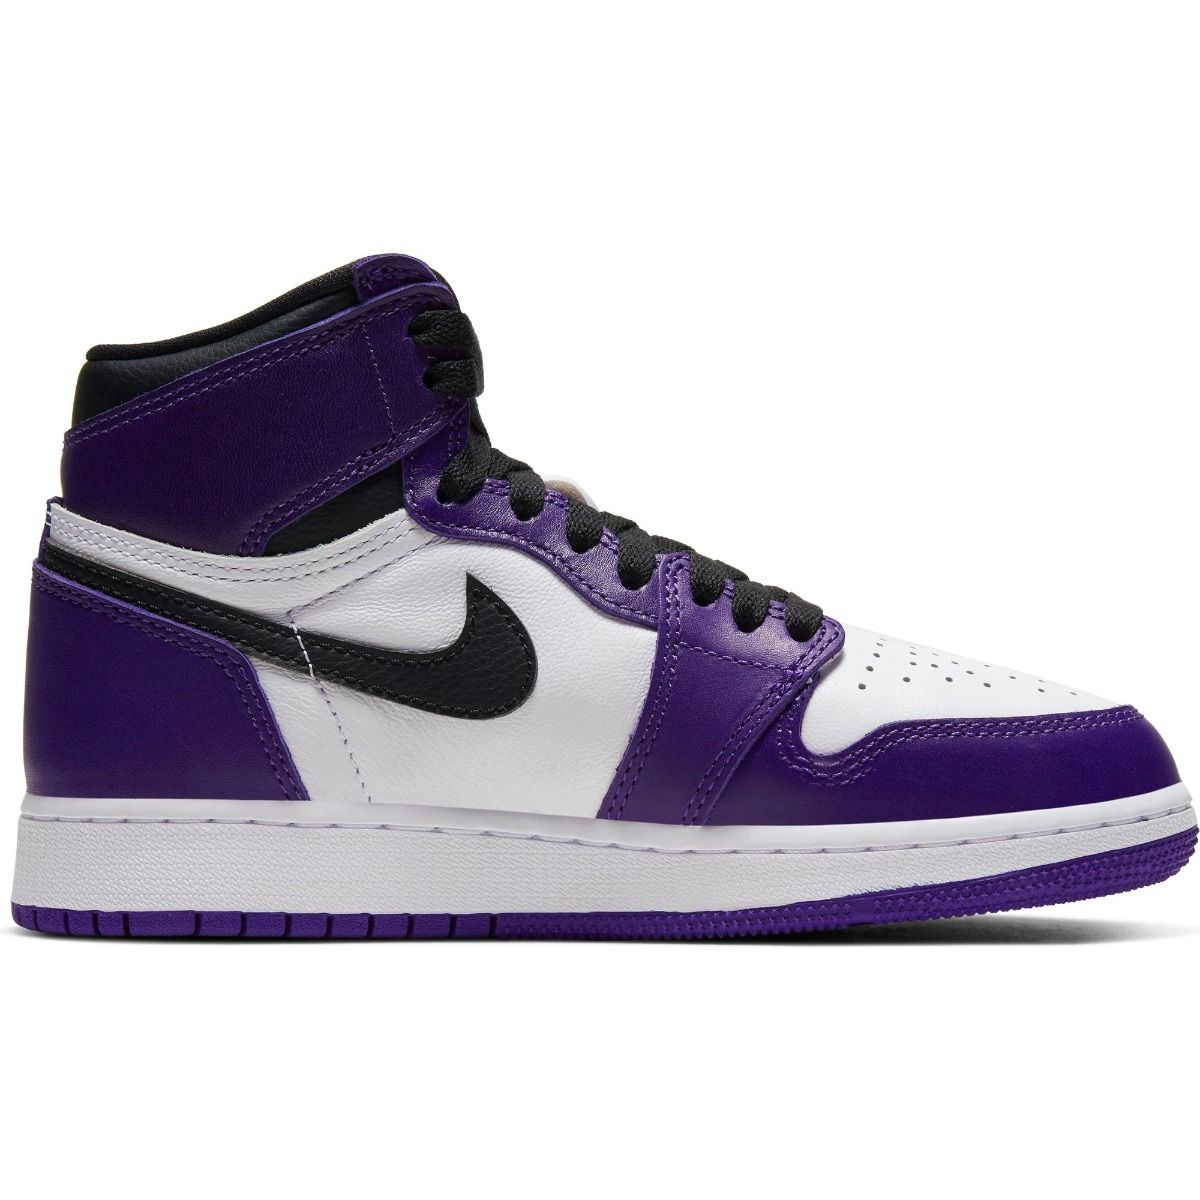 air jordan 1 court purple 2020 raffle